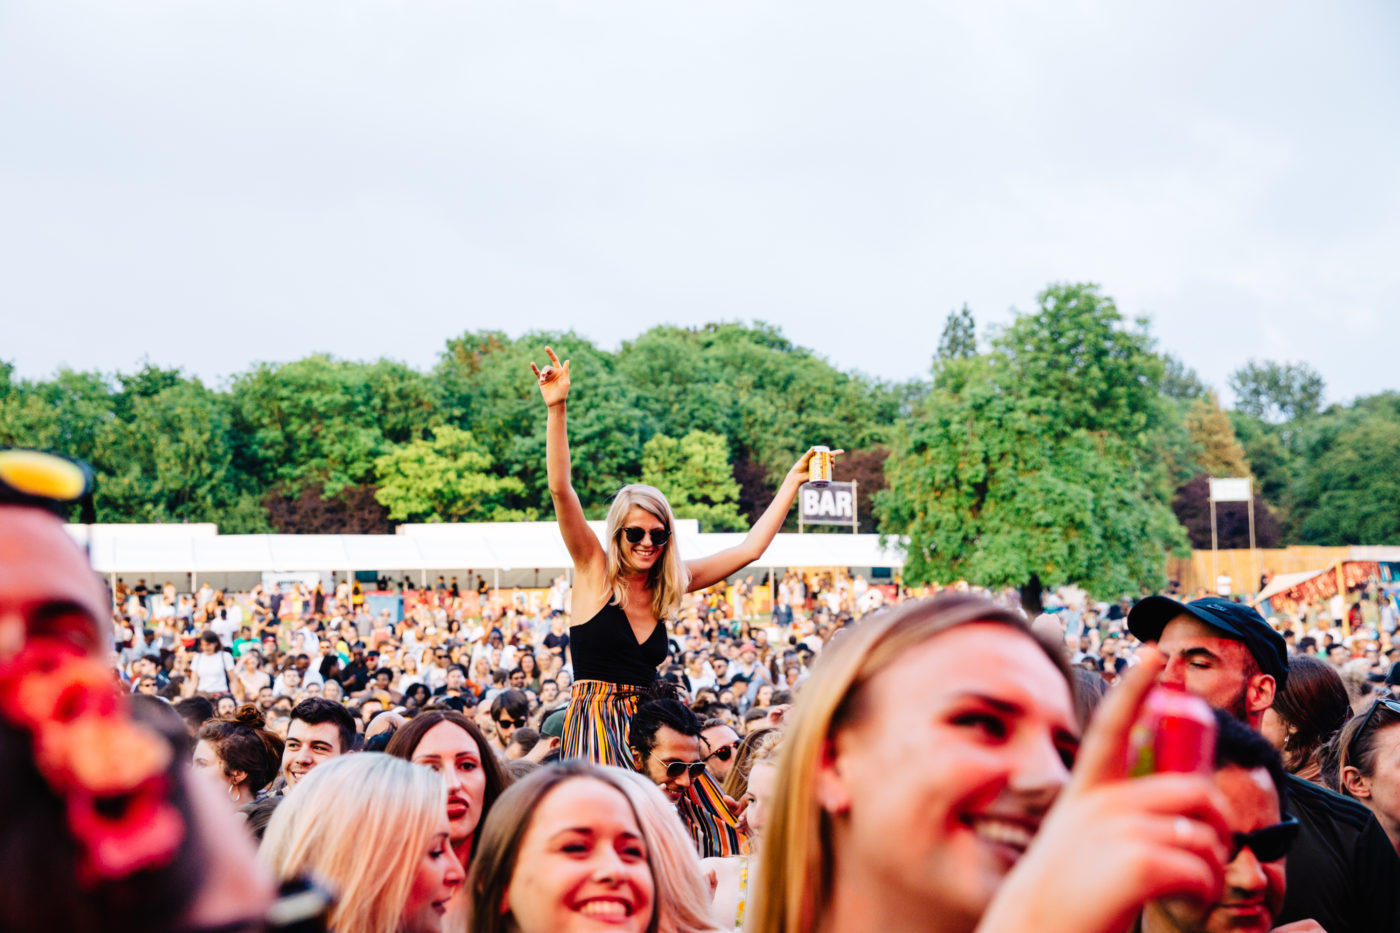 Image of festival crowd with smiling people, in the middle distance is a woman with her arms in the air sitting on someone's shoulders